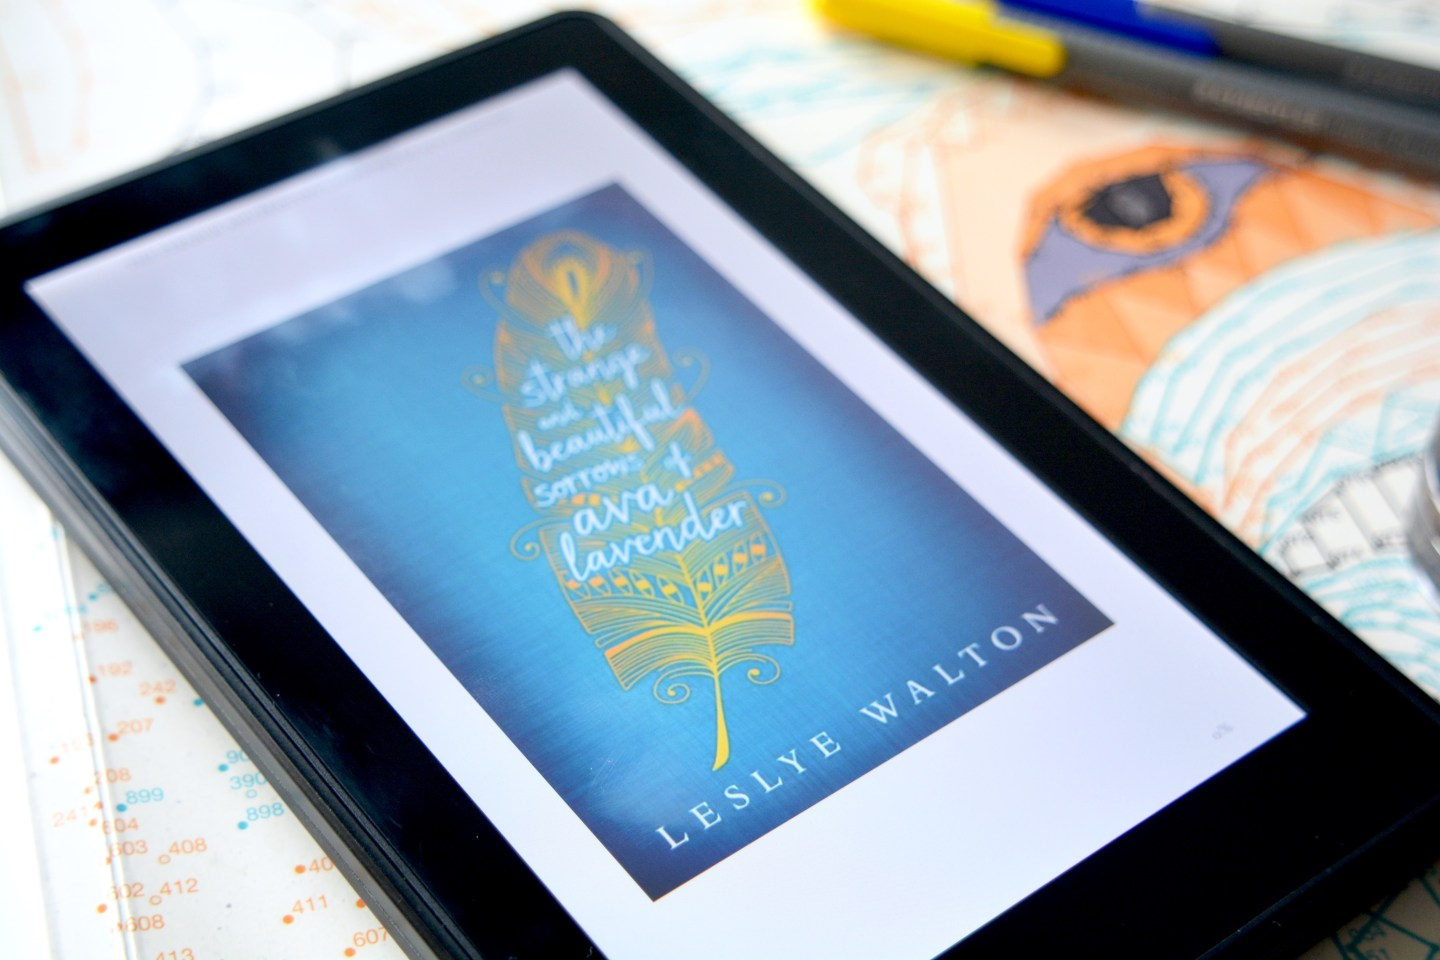 Friday Faves: Who doesn't need some magical realism in their lives? I loved The Strange and Beautiful Sorrows of Ava Lavender. So wonderful!